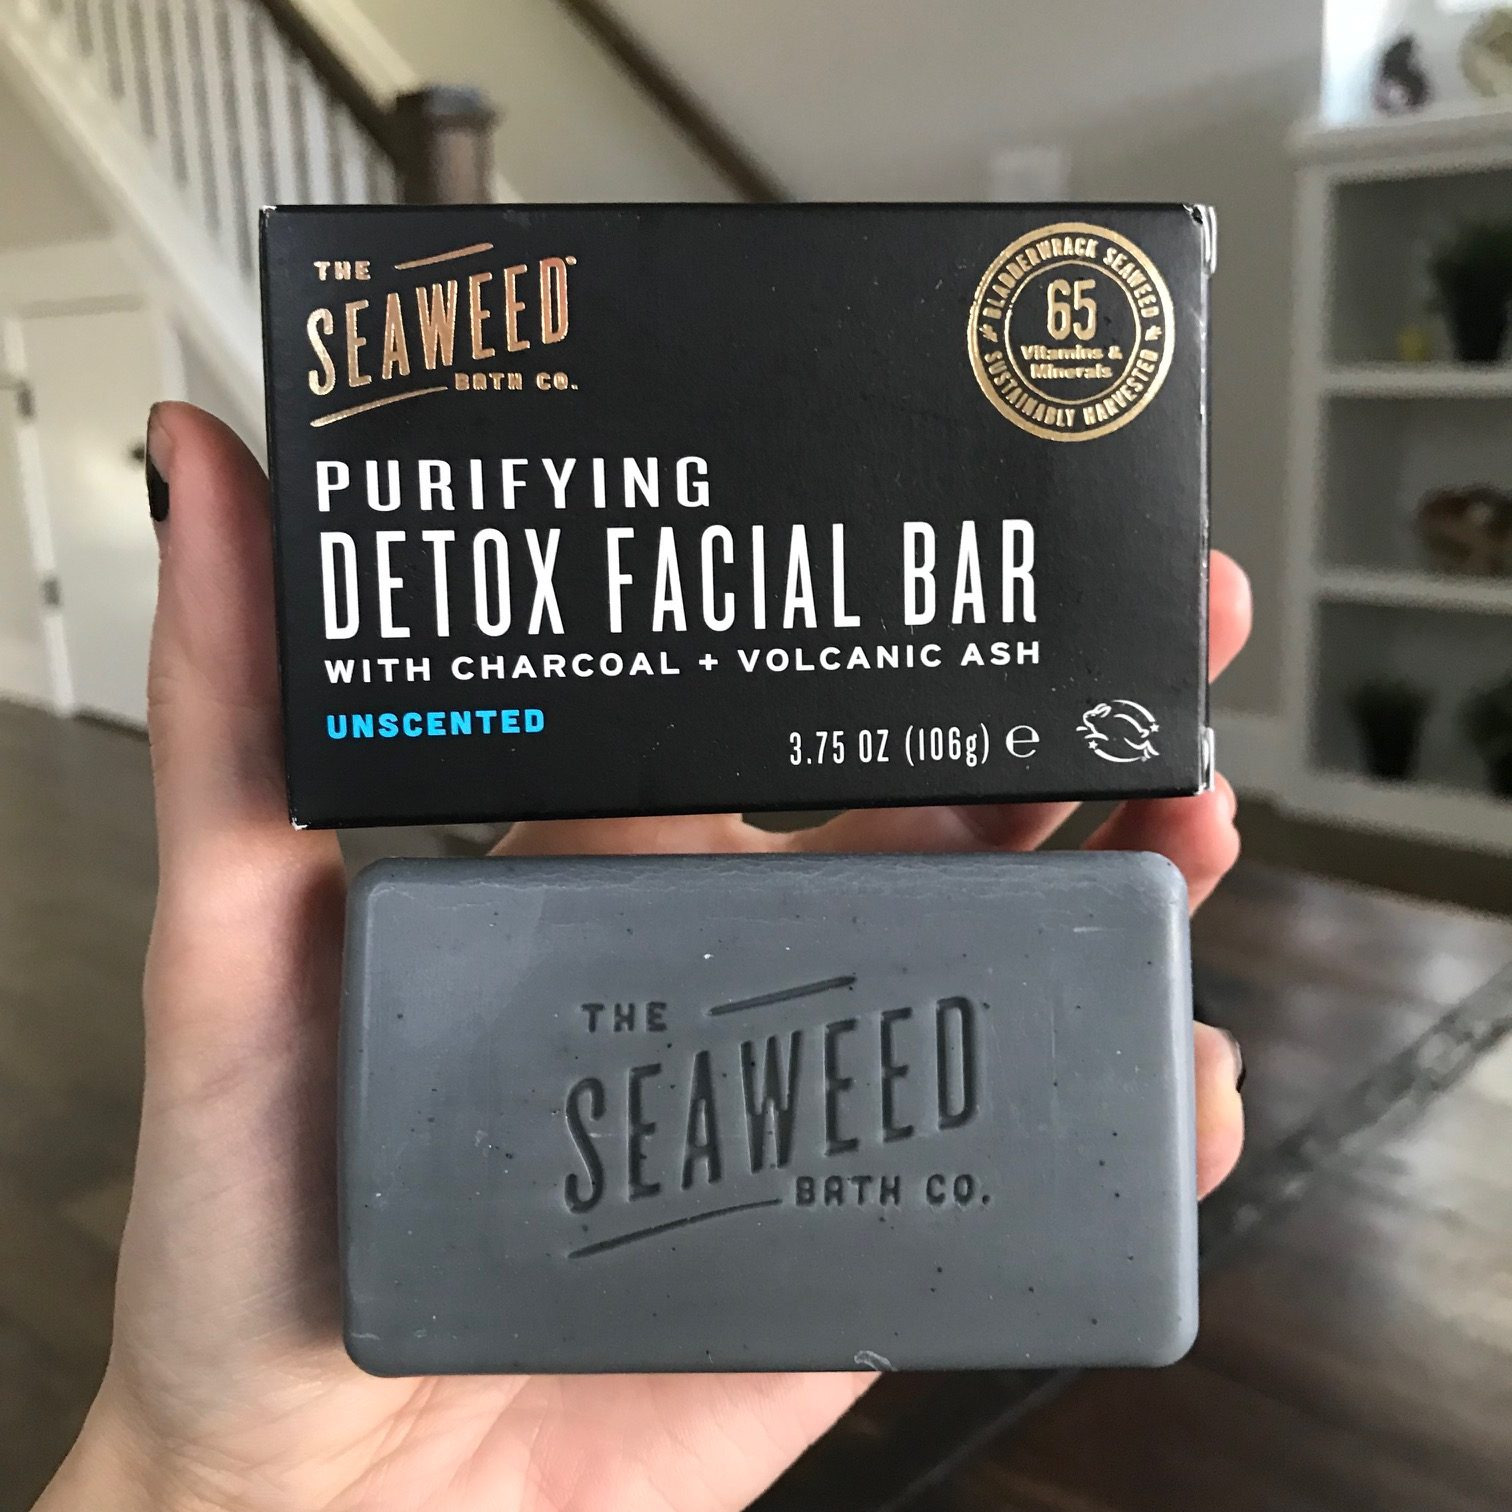 Seaweed Bath Co. Detox Facial Bar